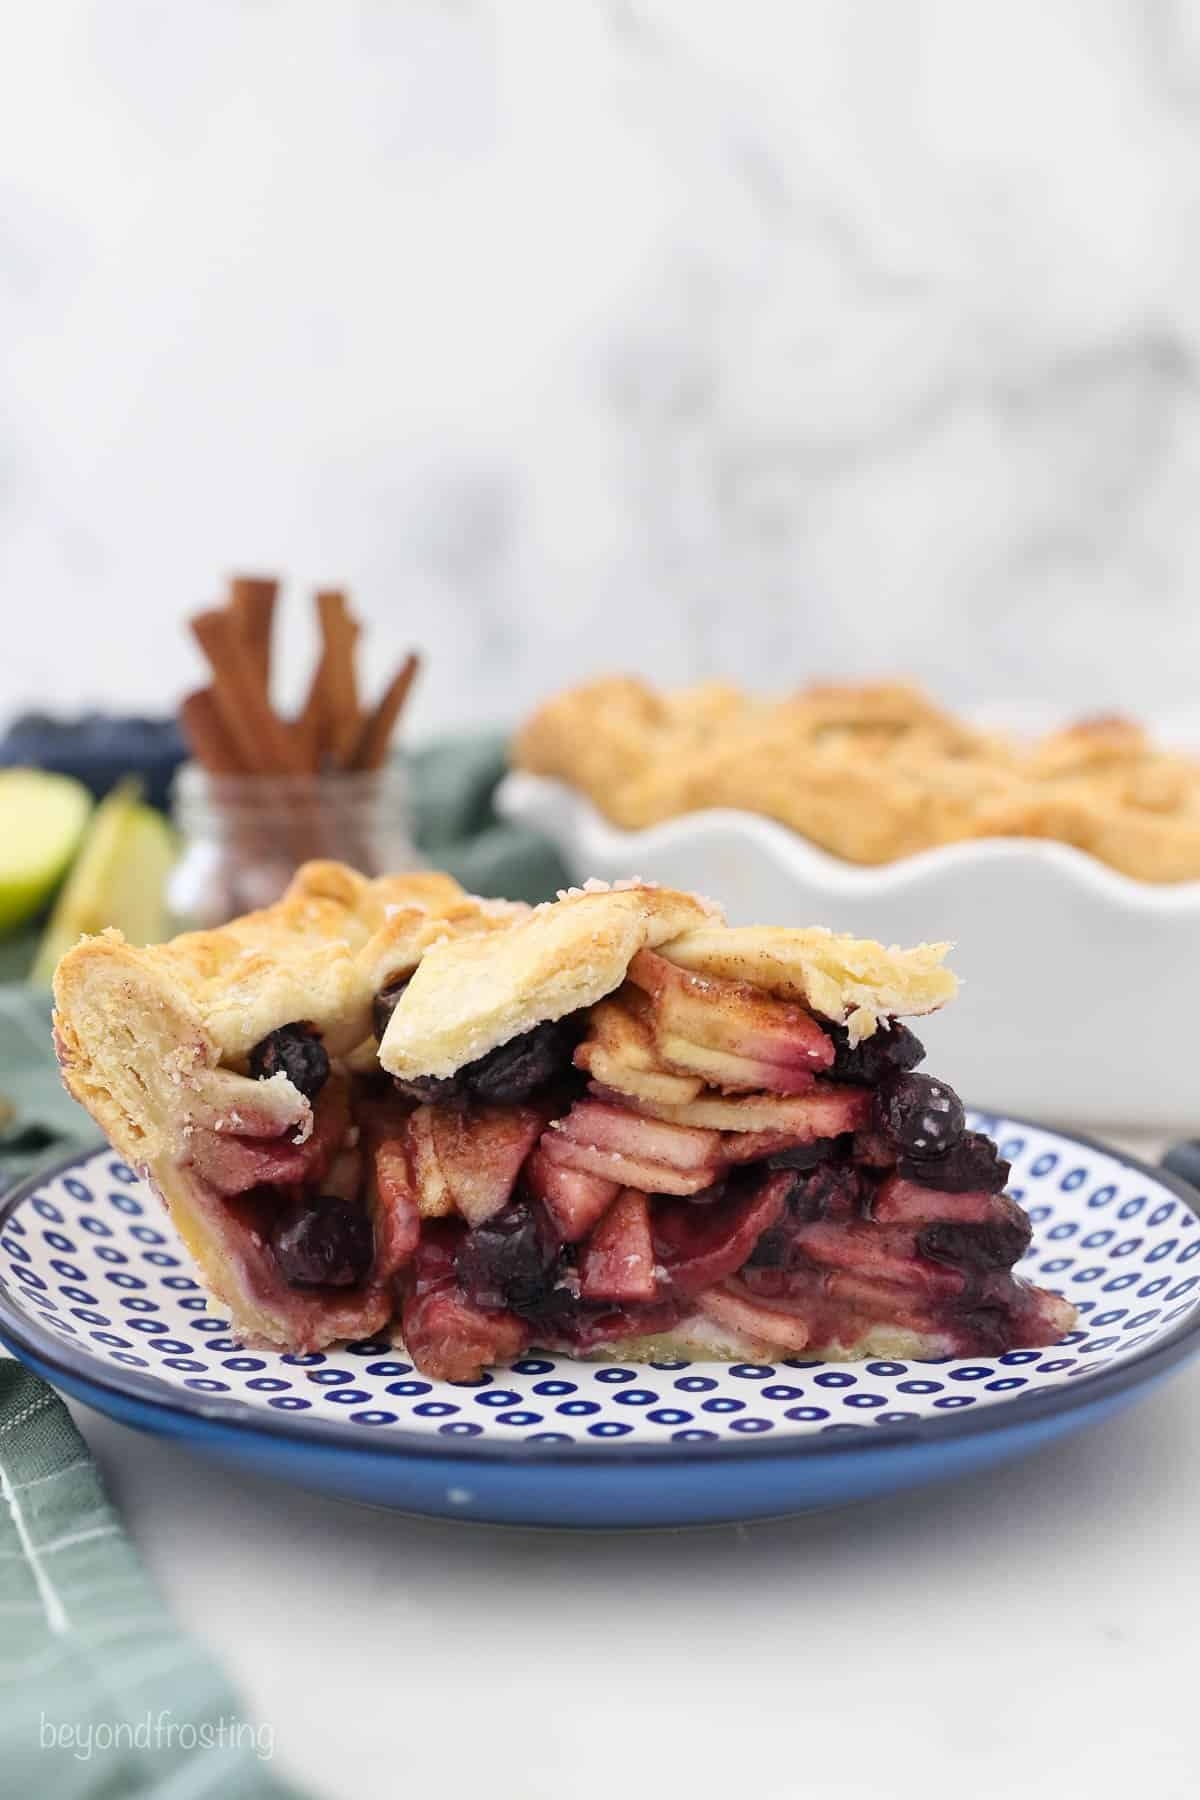 A side view of slice of apple and blueberry filled pie on a blue polka dot plate